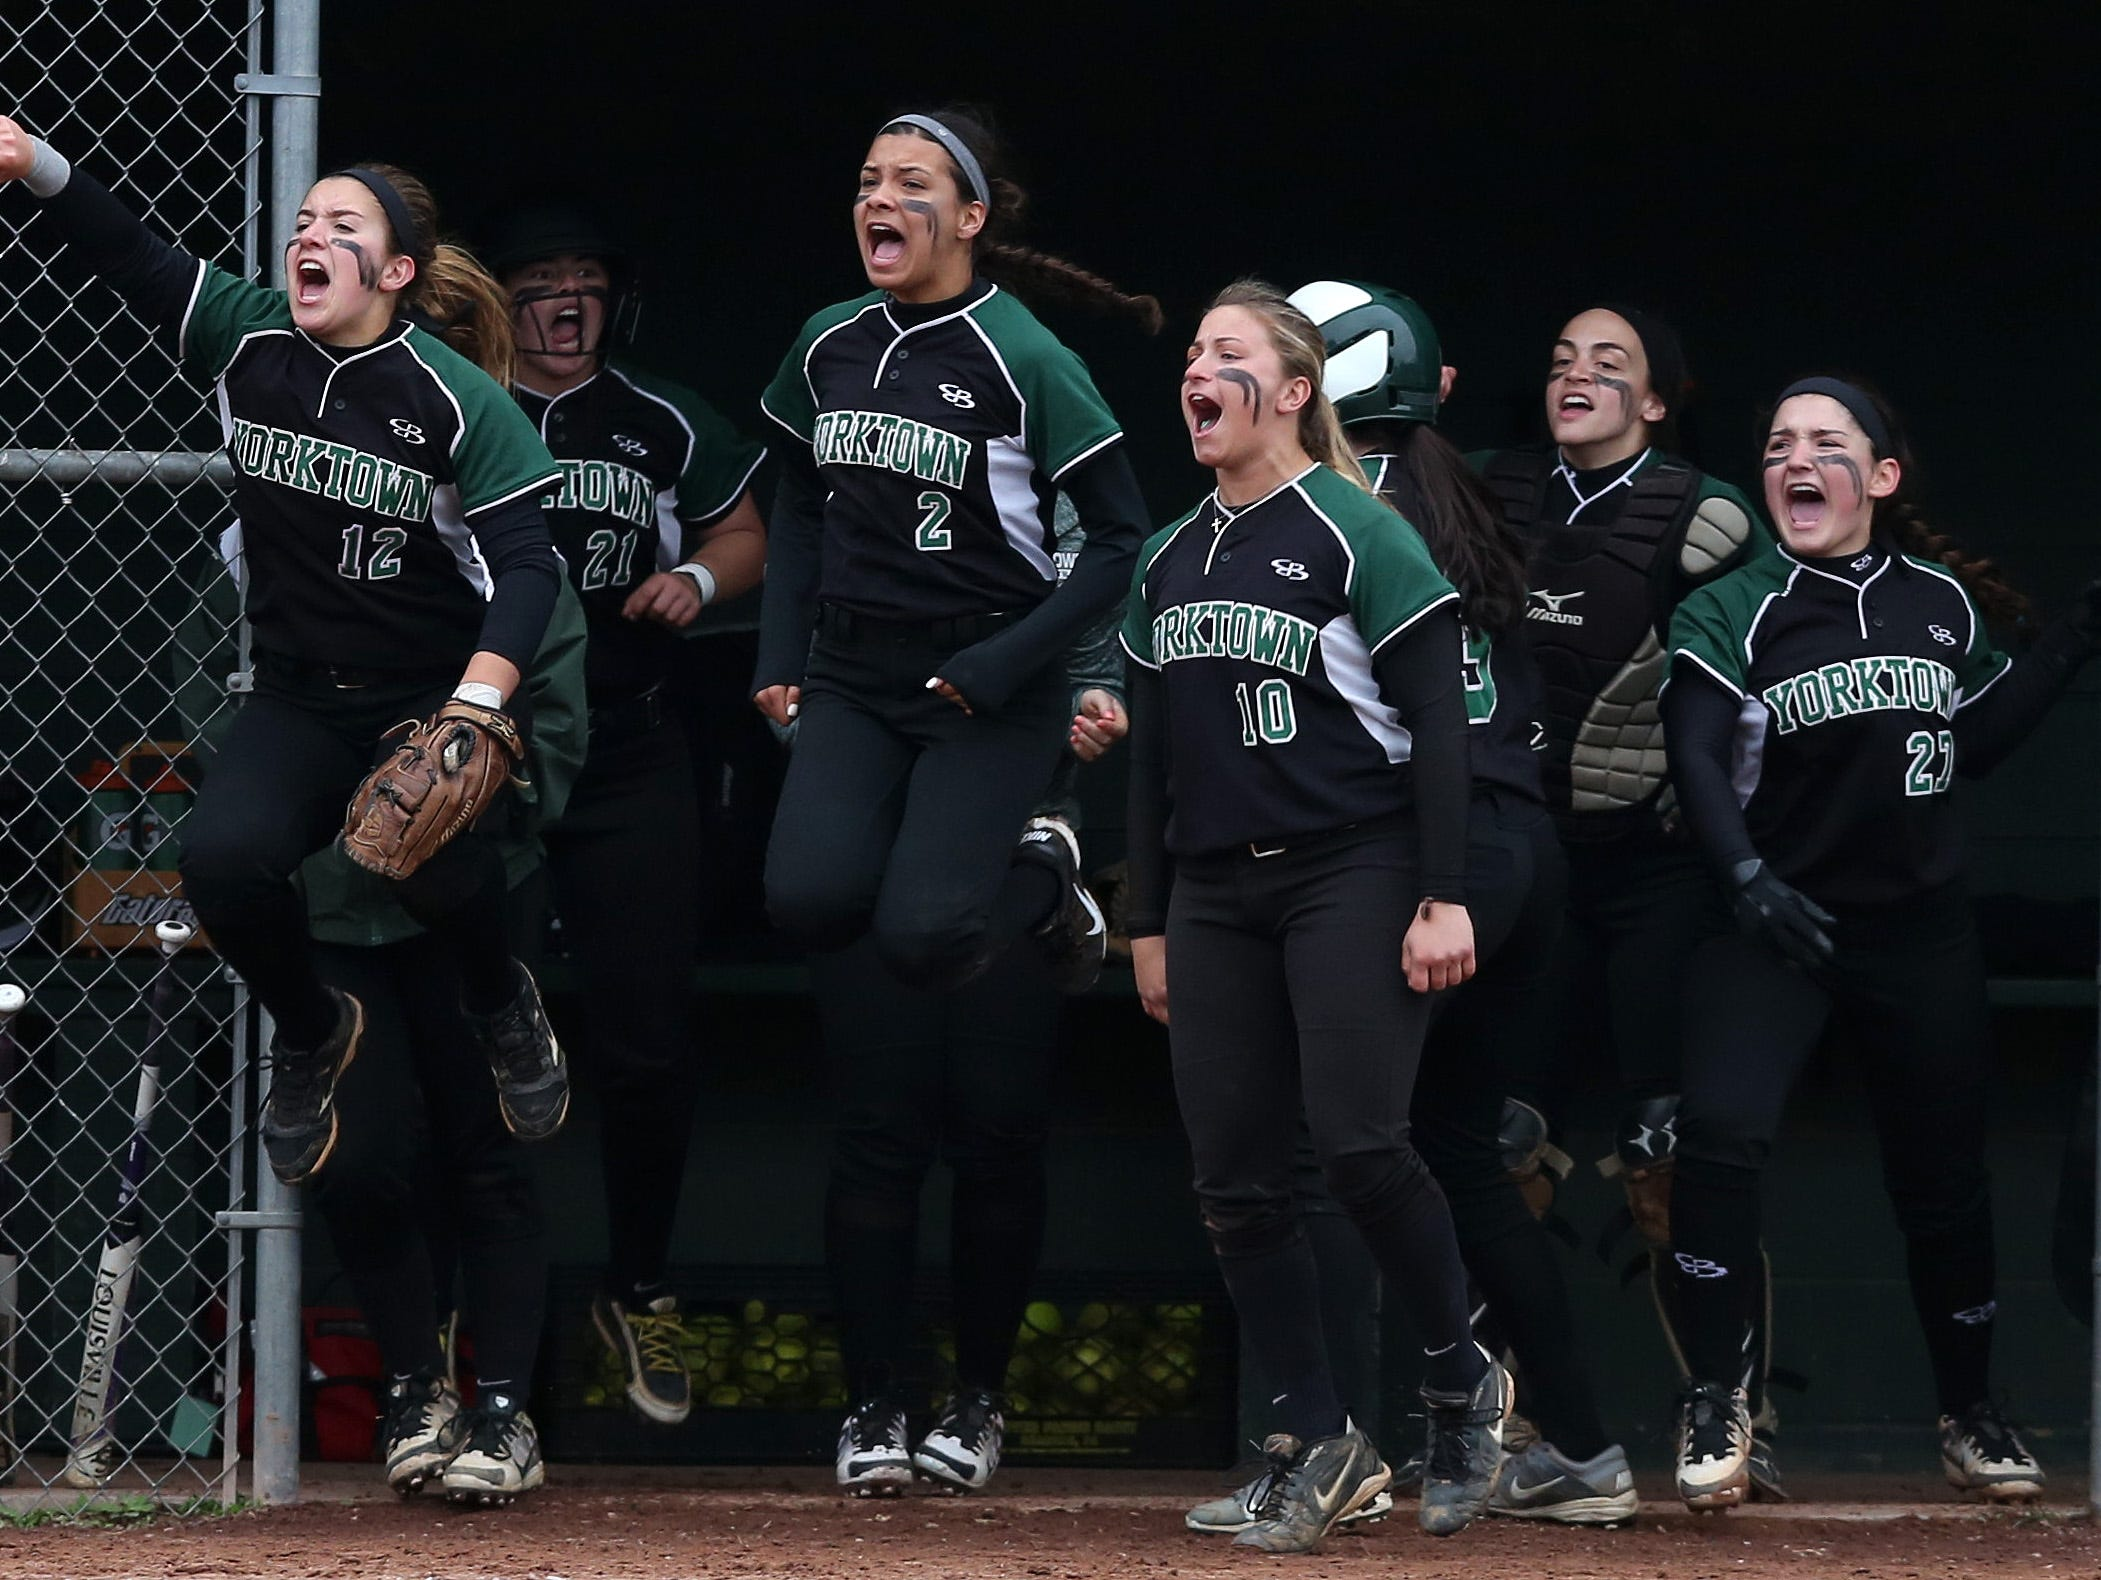 Yorktown players celebrate a run during a seventh inning rally against Brewster in a girls softball game at Brewster High School May 5, 2016. Yorktown won the game 6-4.